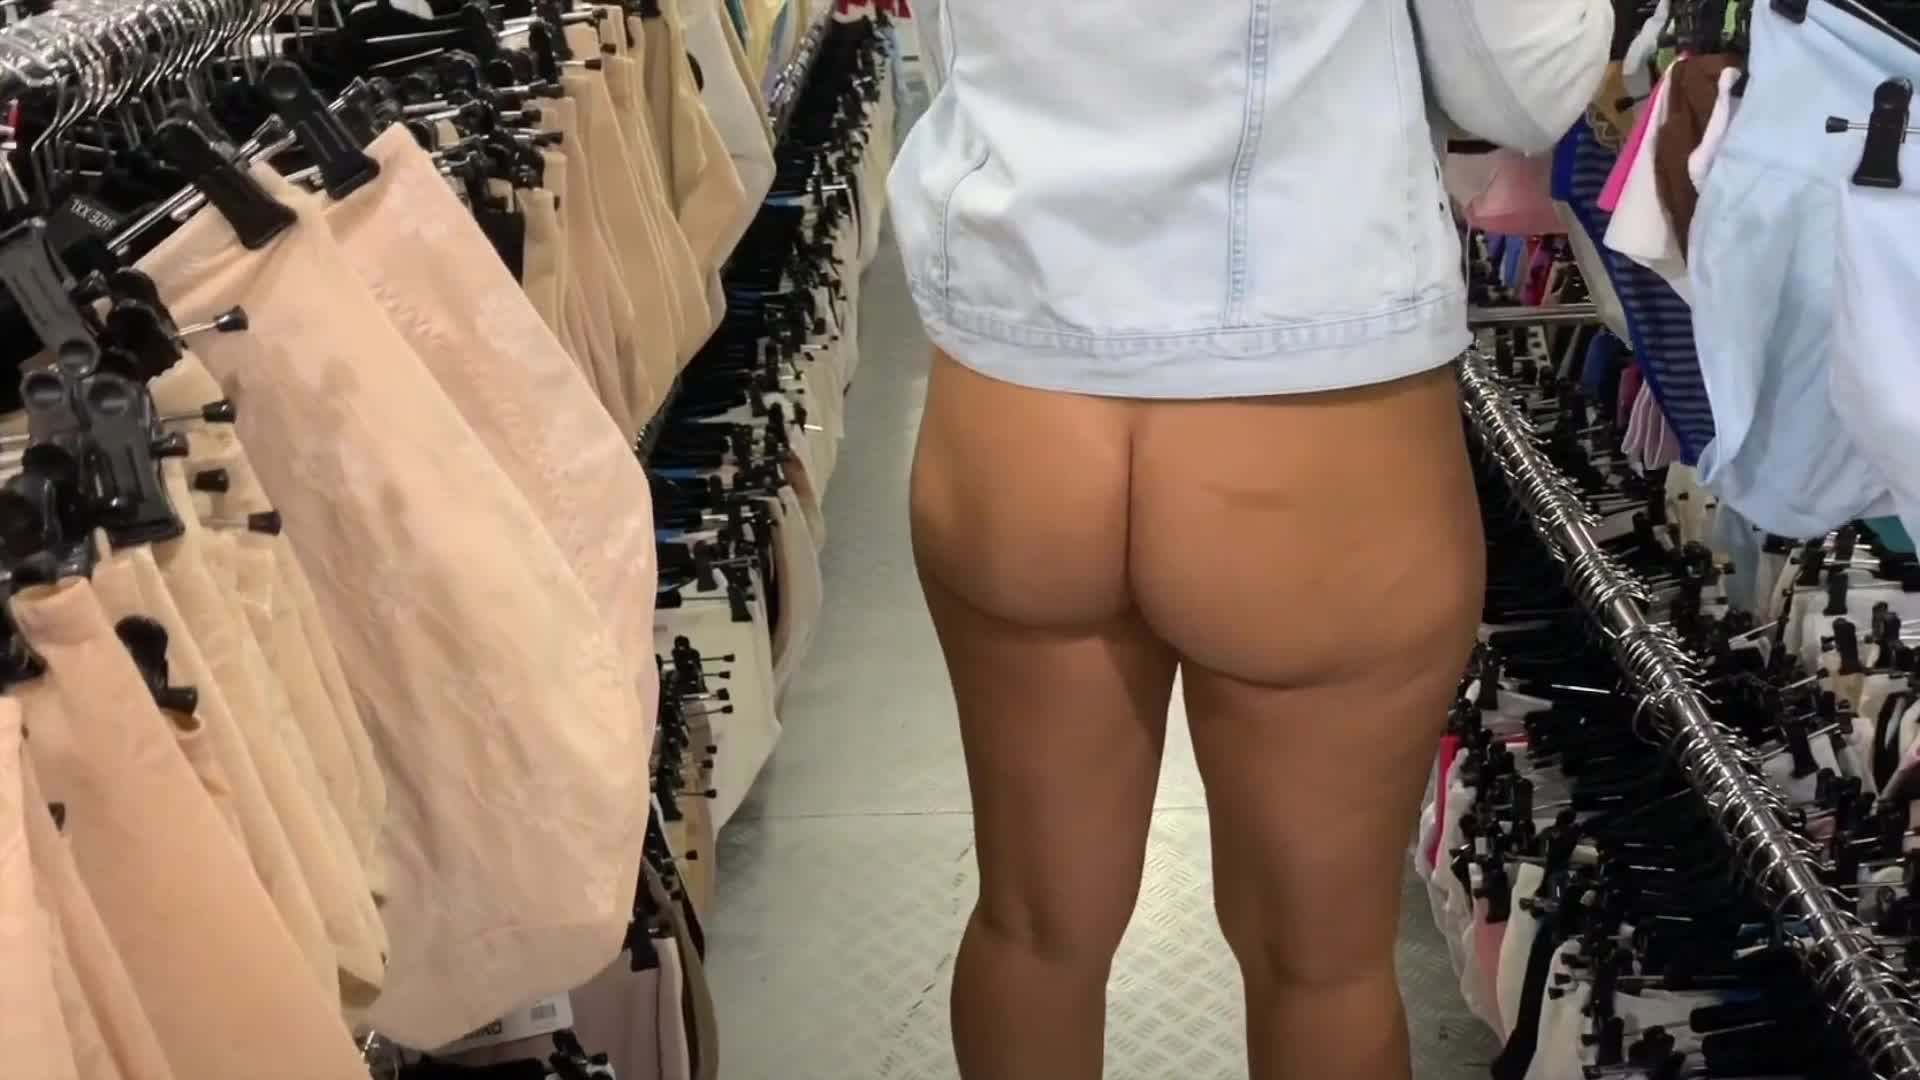 Why use bottoms at the store when you can wear nothing? [GIF]